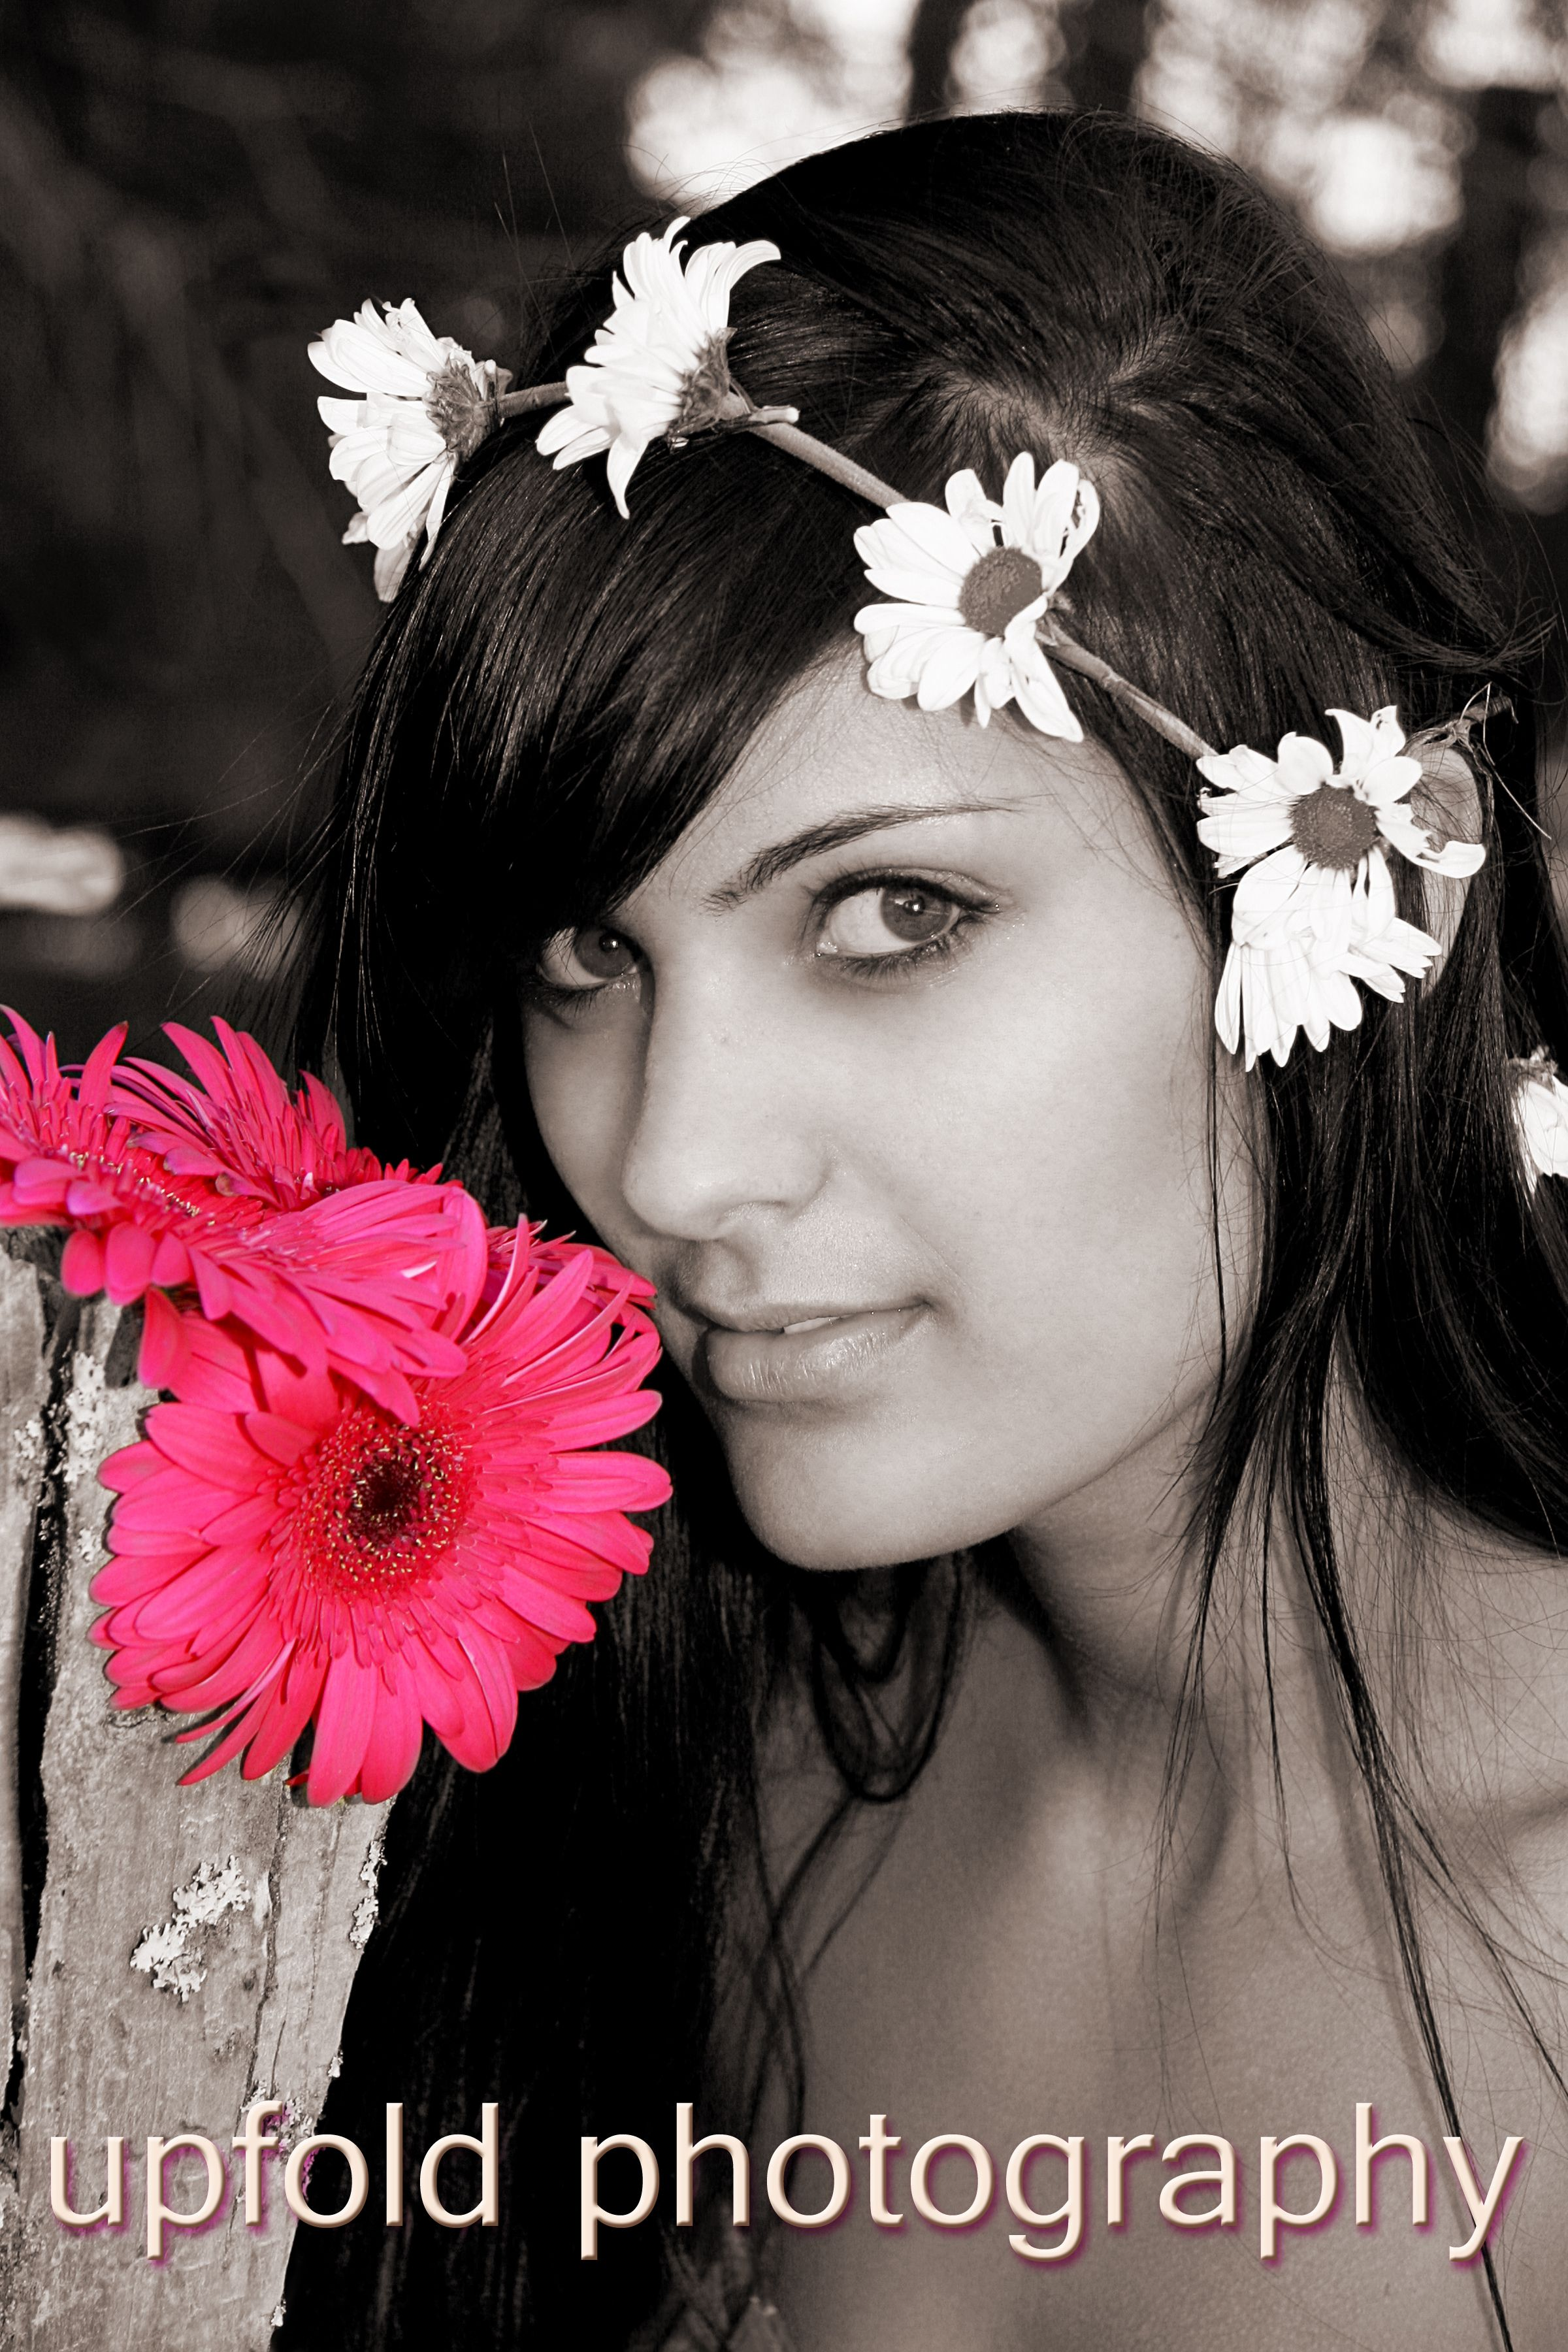 Such a beautiful girl with flowers in her hair image by upfold such a beautiful girl with flowers in her hair image by upfold photography izmirmasajfo